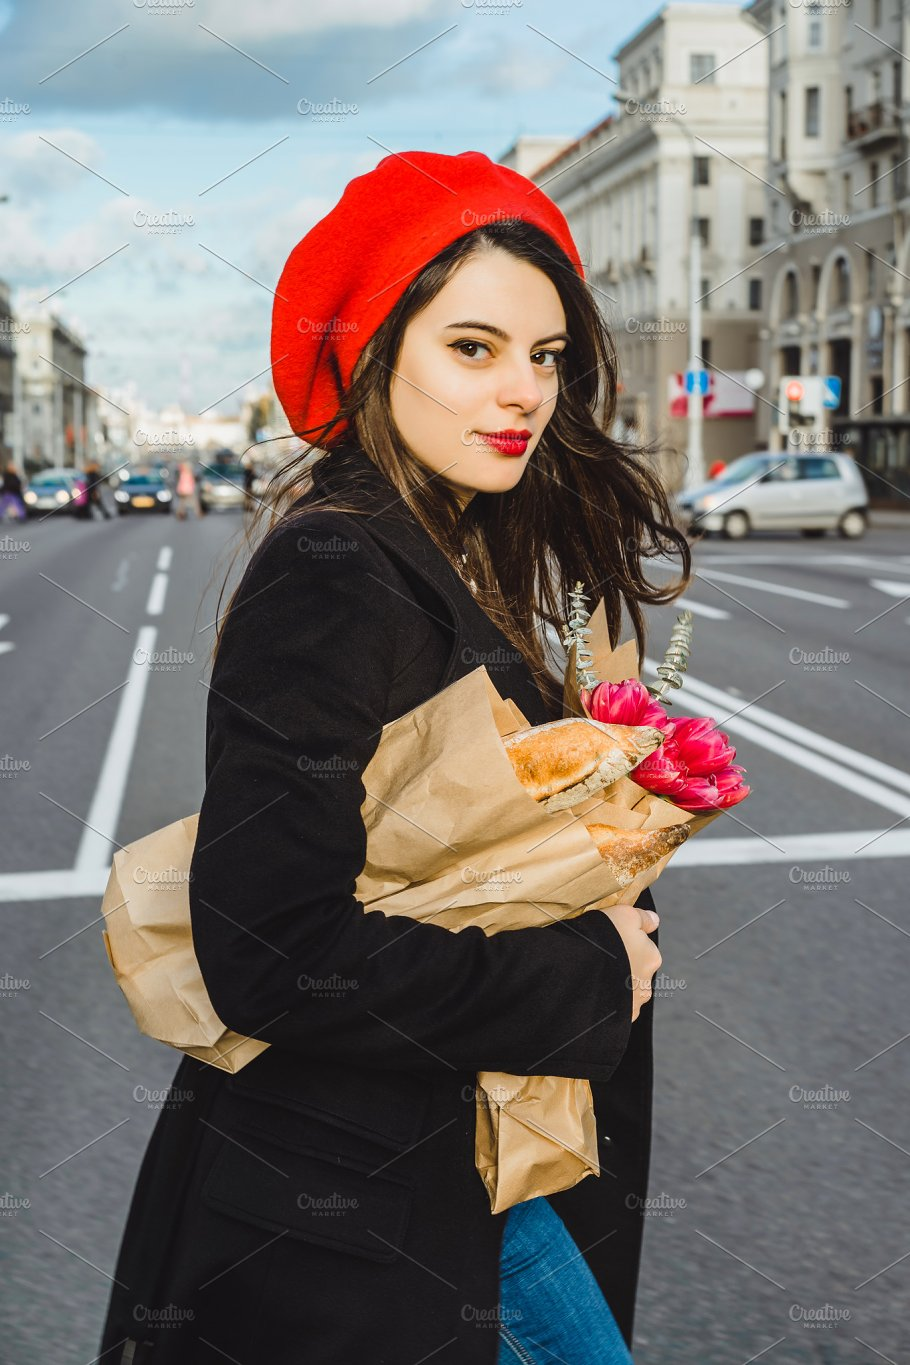 French woman in beret with baguettes ~ Beauty   Fashion Photos ~ Creative  Market 7a795c632da